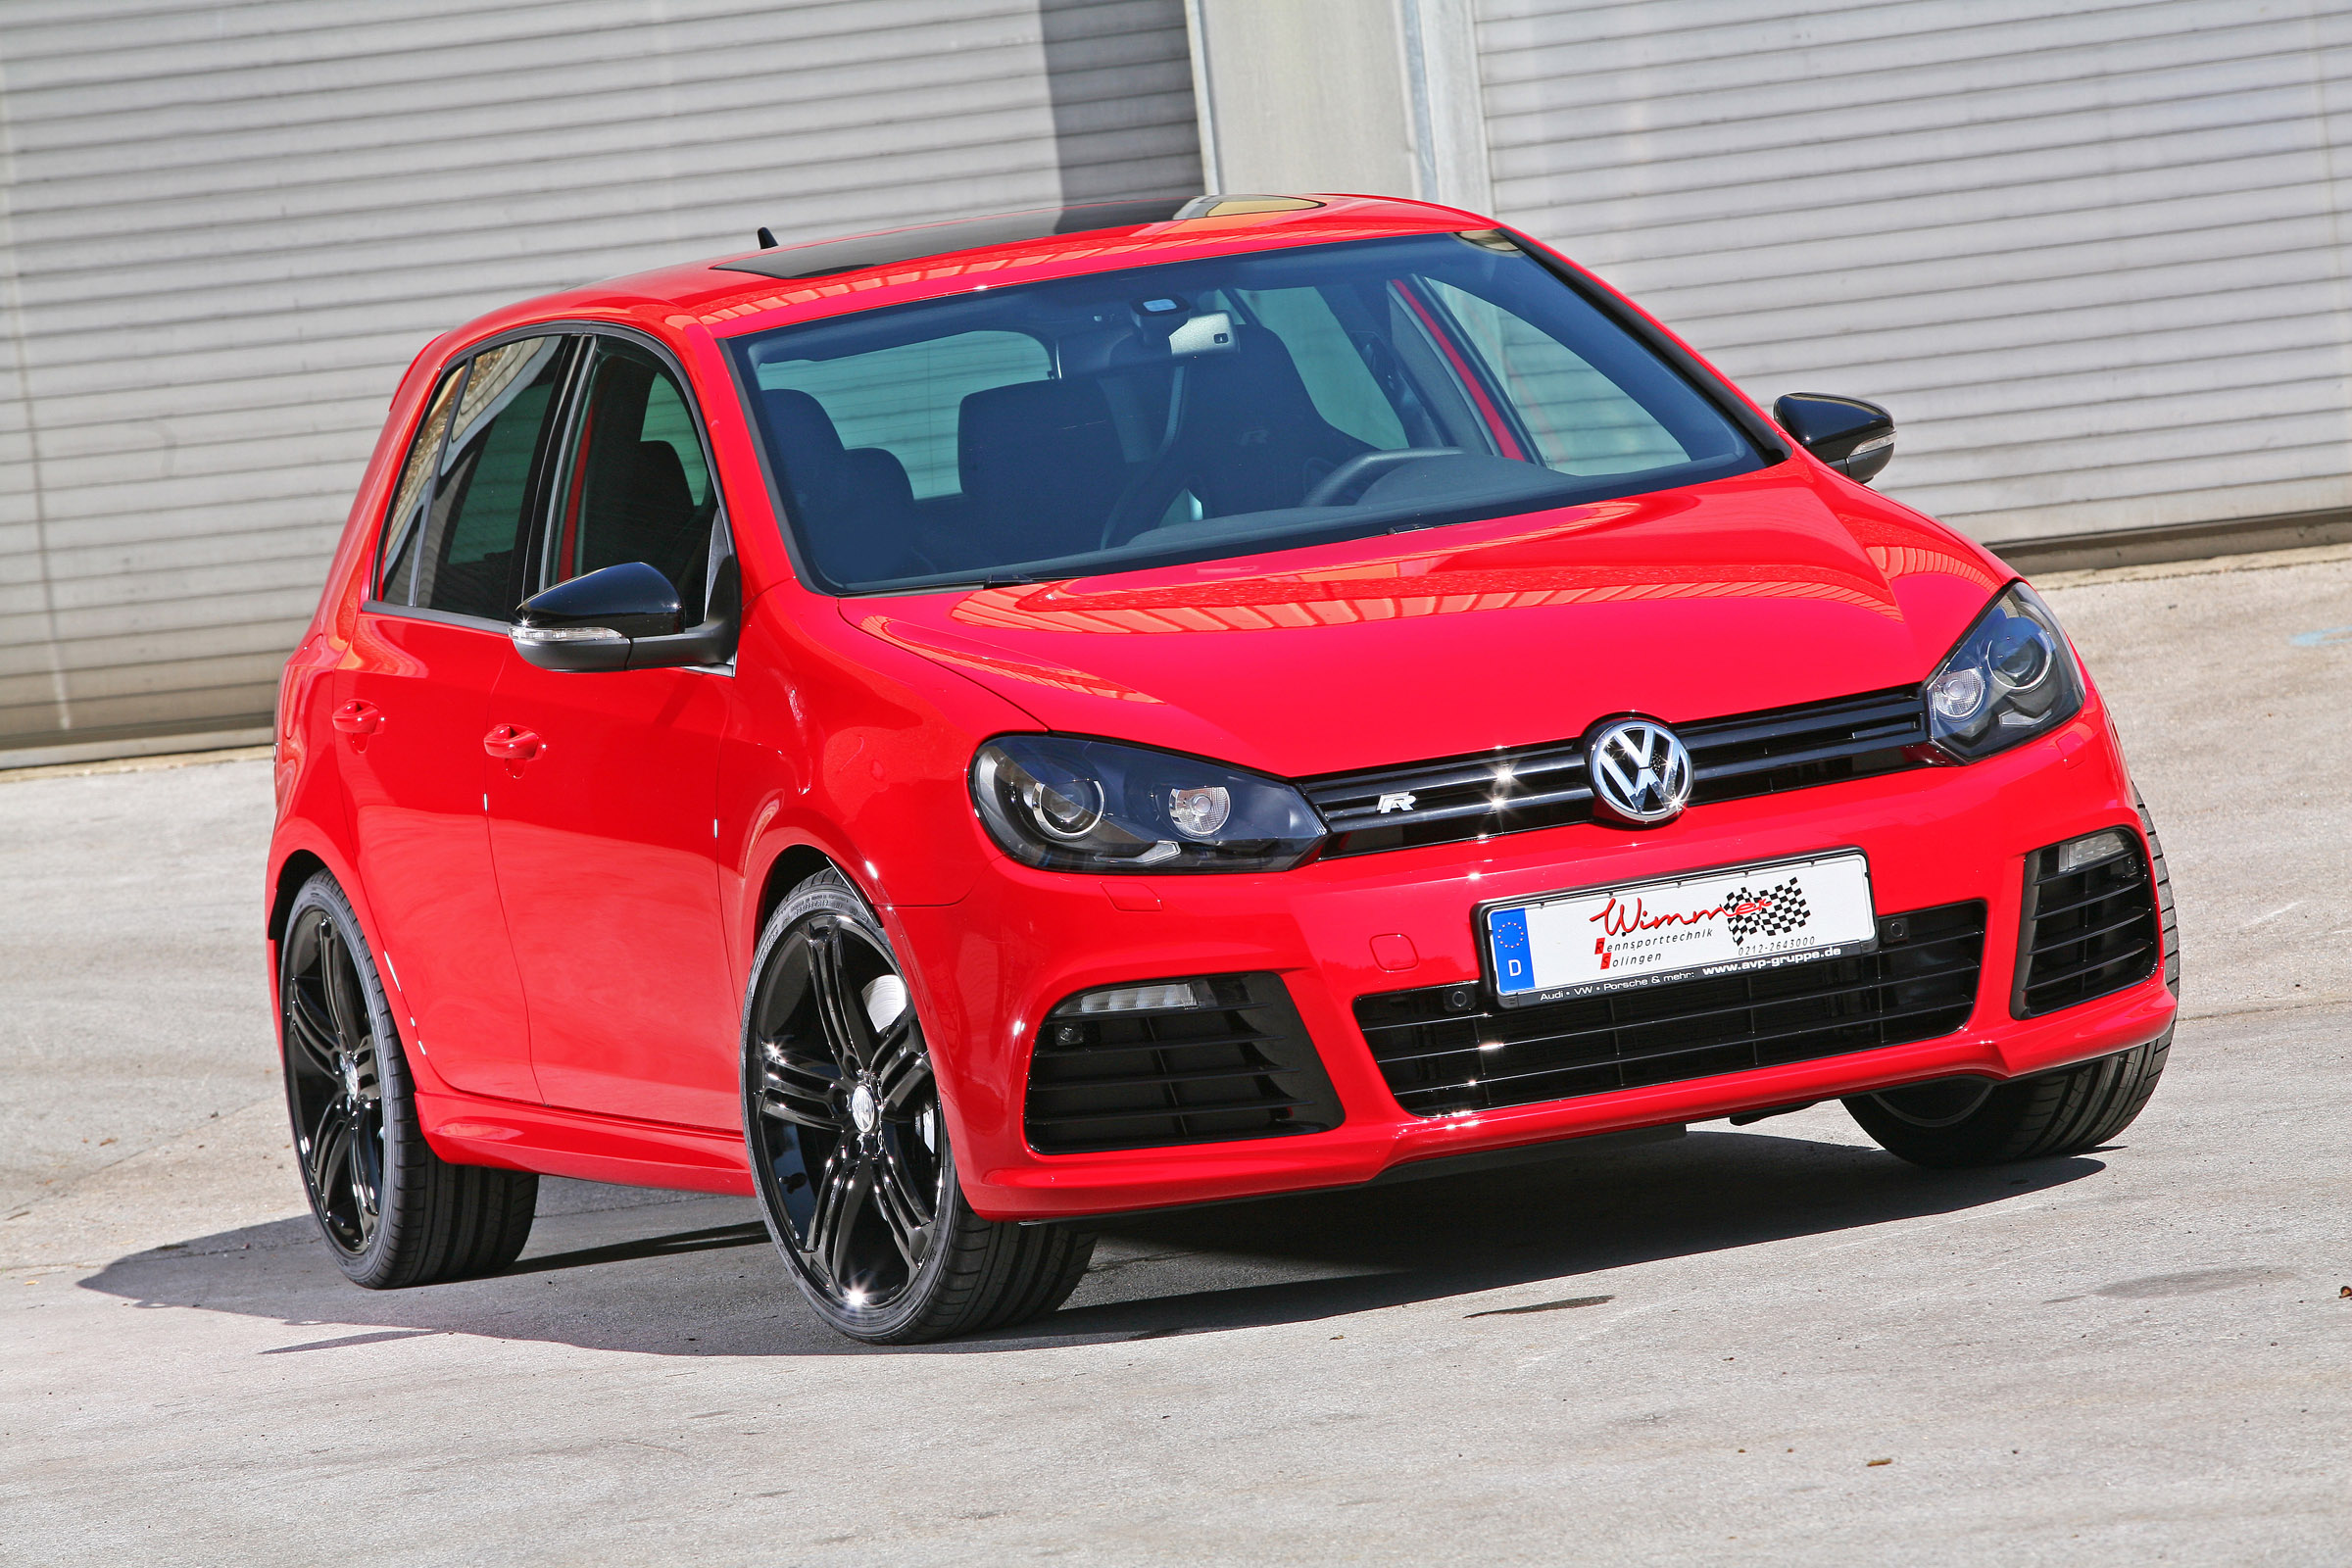 Wimmer Rs Presents Its Red Devil V An Extraordinary